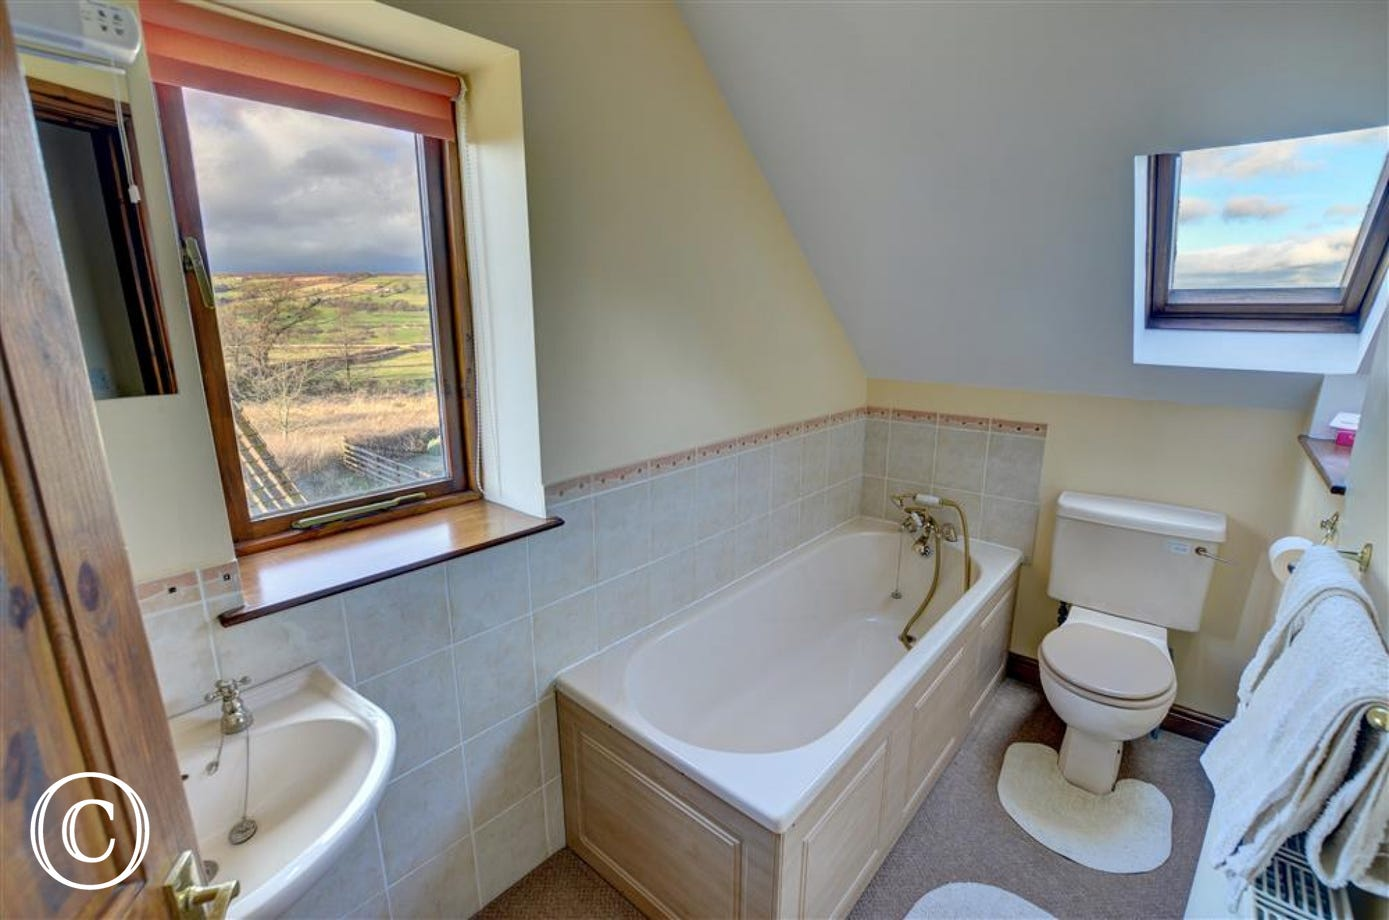 Bathroom has a bath and some great views!